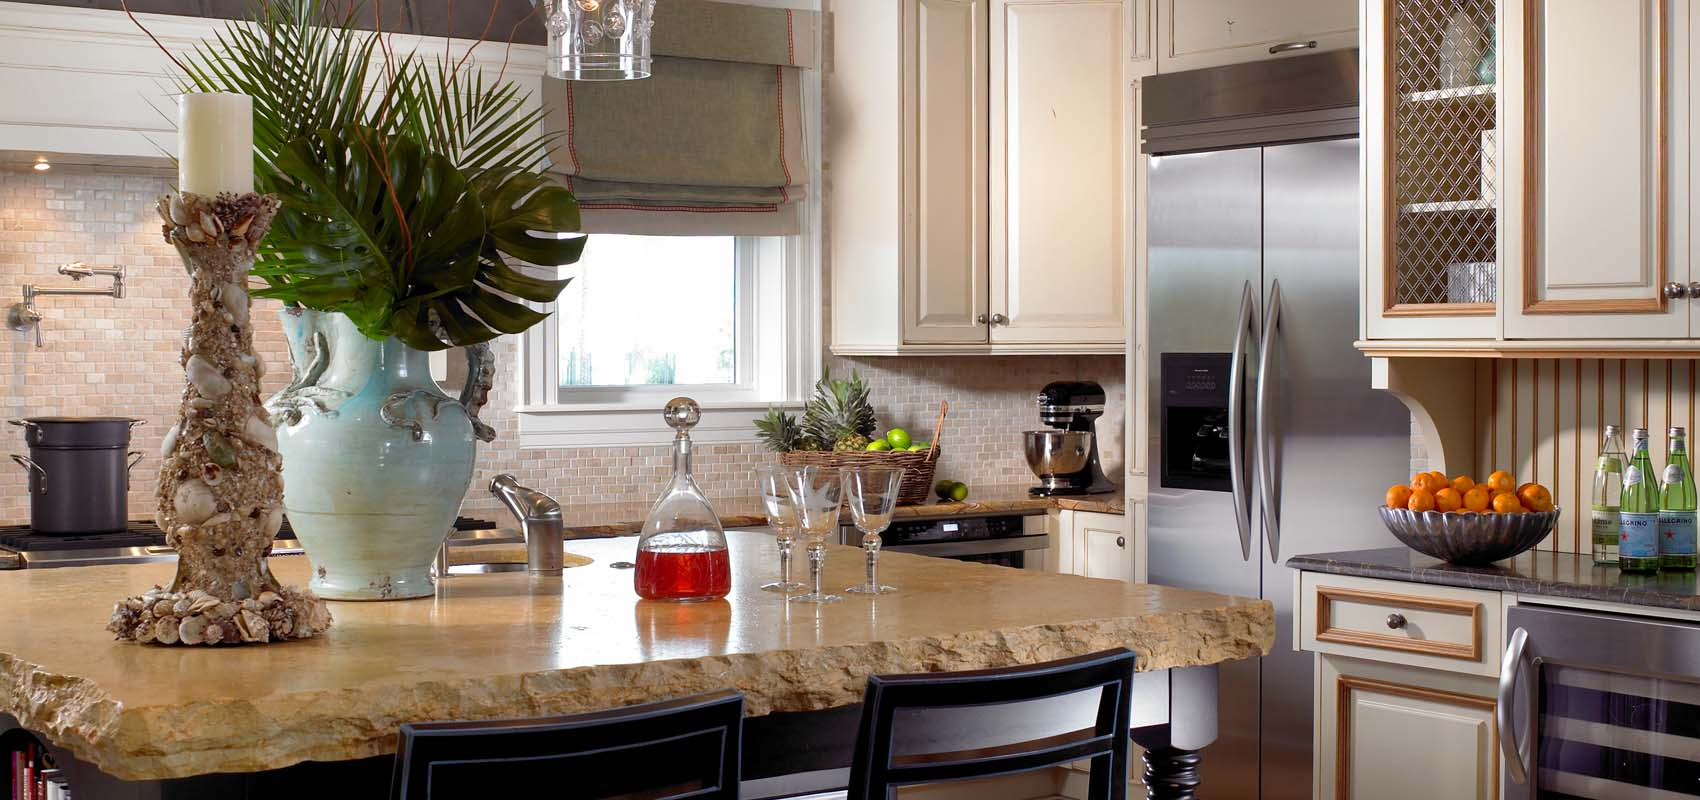 River city custom cabinetry custom cabinetry for your for Kitchen cabinets jacksonville fl